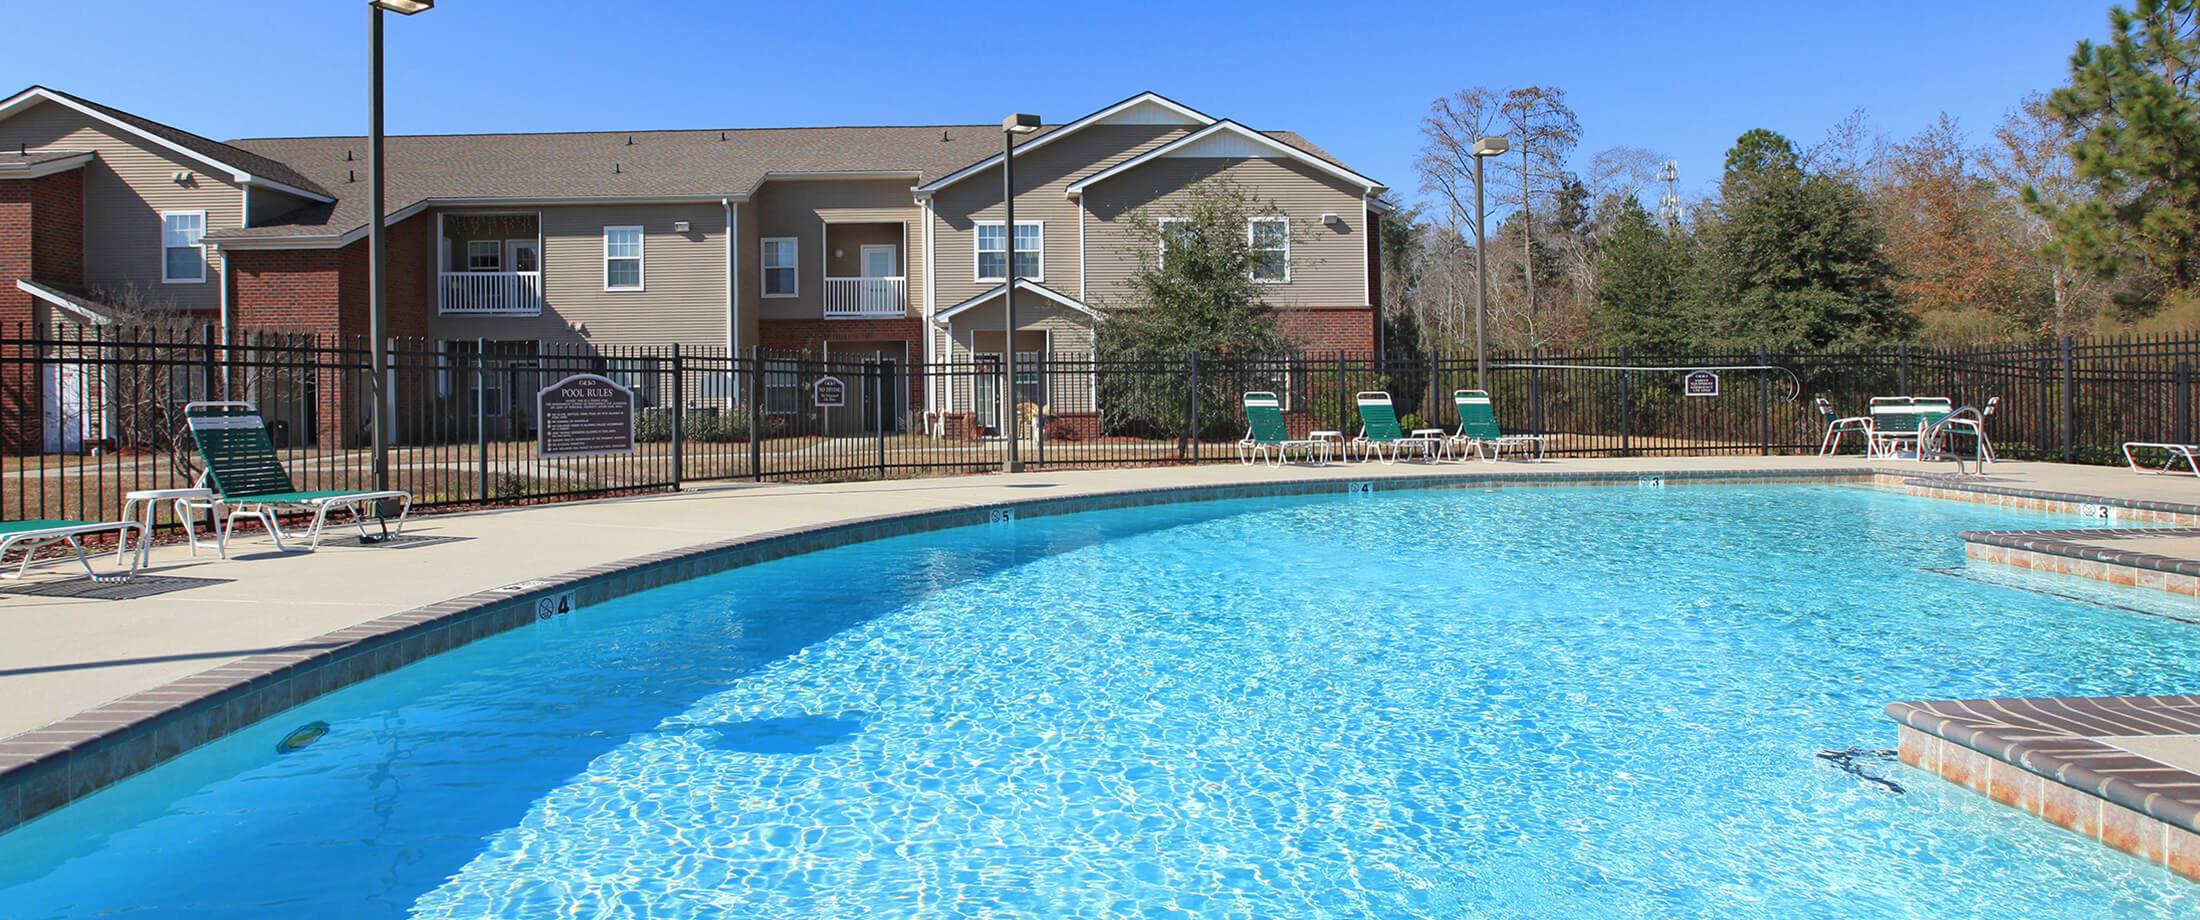 Riverchase park apartments in gulfport ms for Home builders in gulfport ms